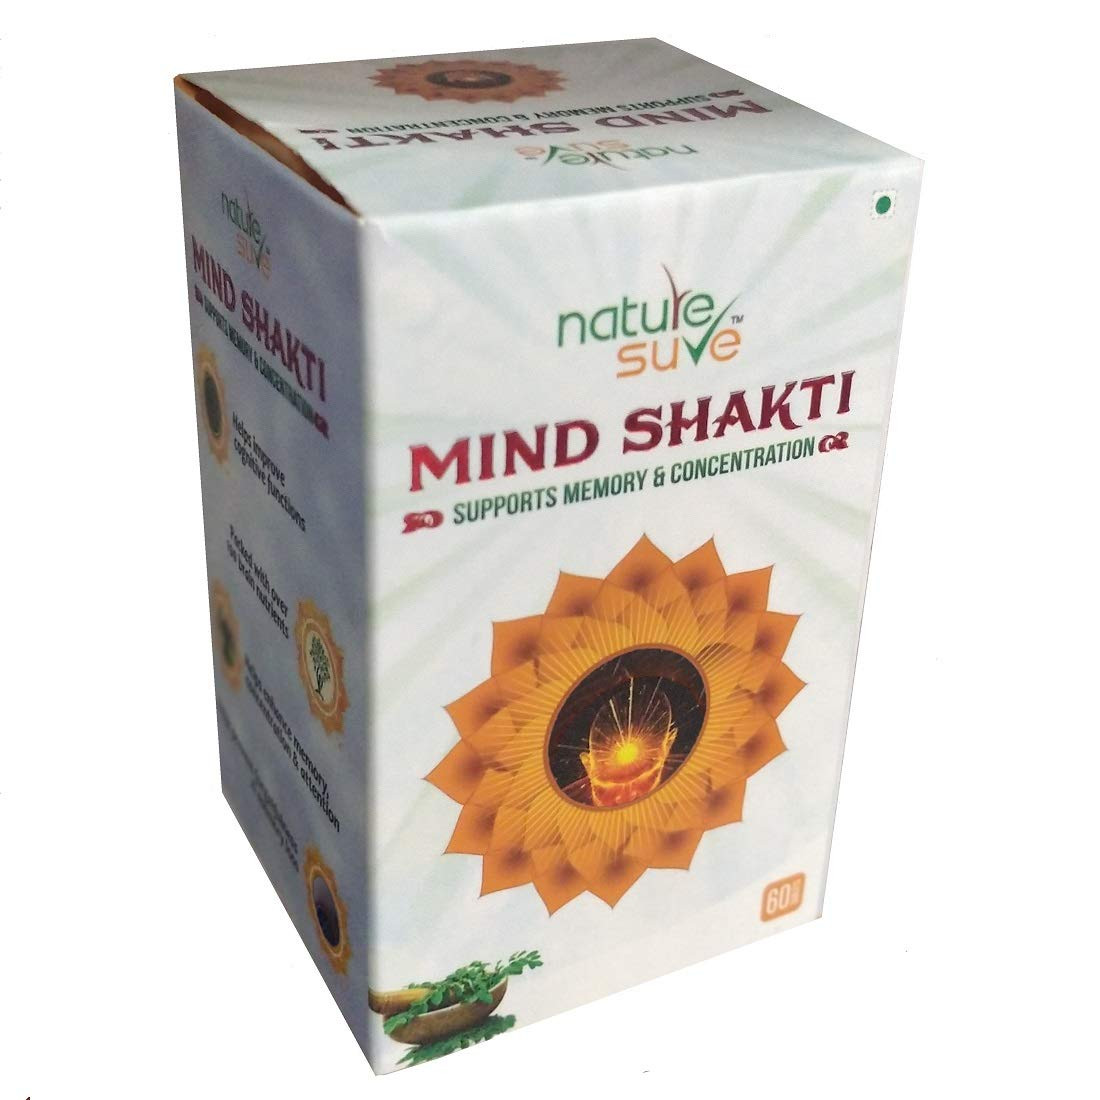 Nature Sure™ Mind Shakti Tablets - for Memory and Concentration - 1 Pack (60 Tablets)